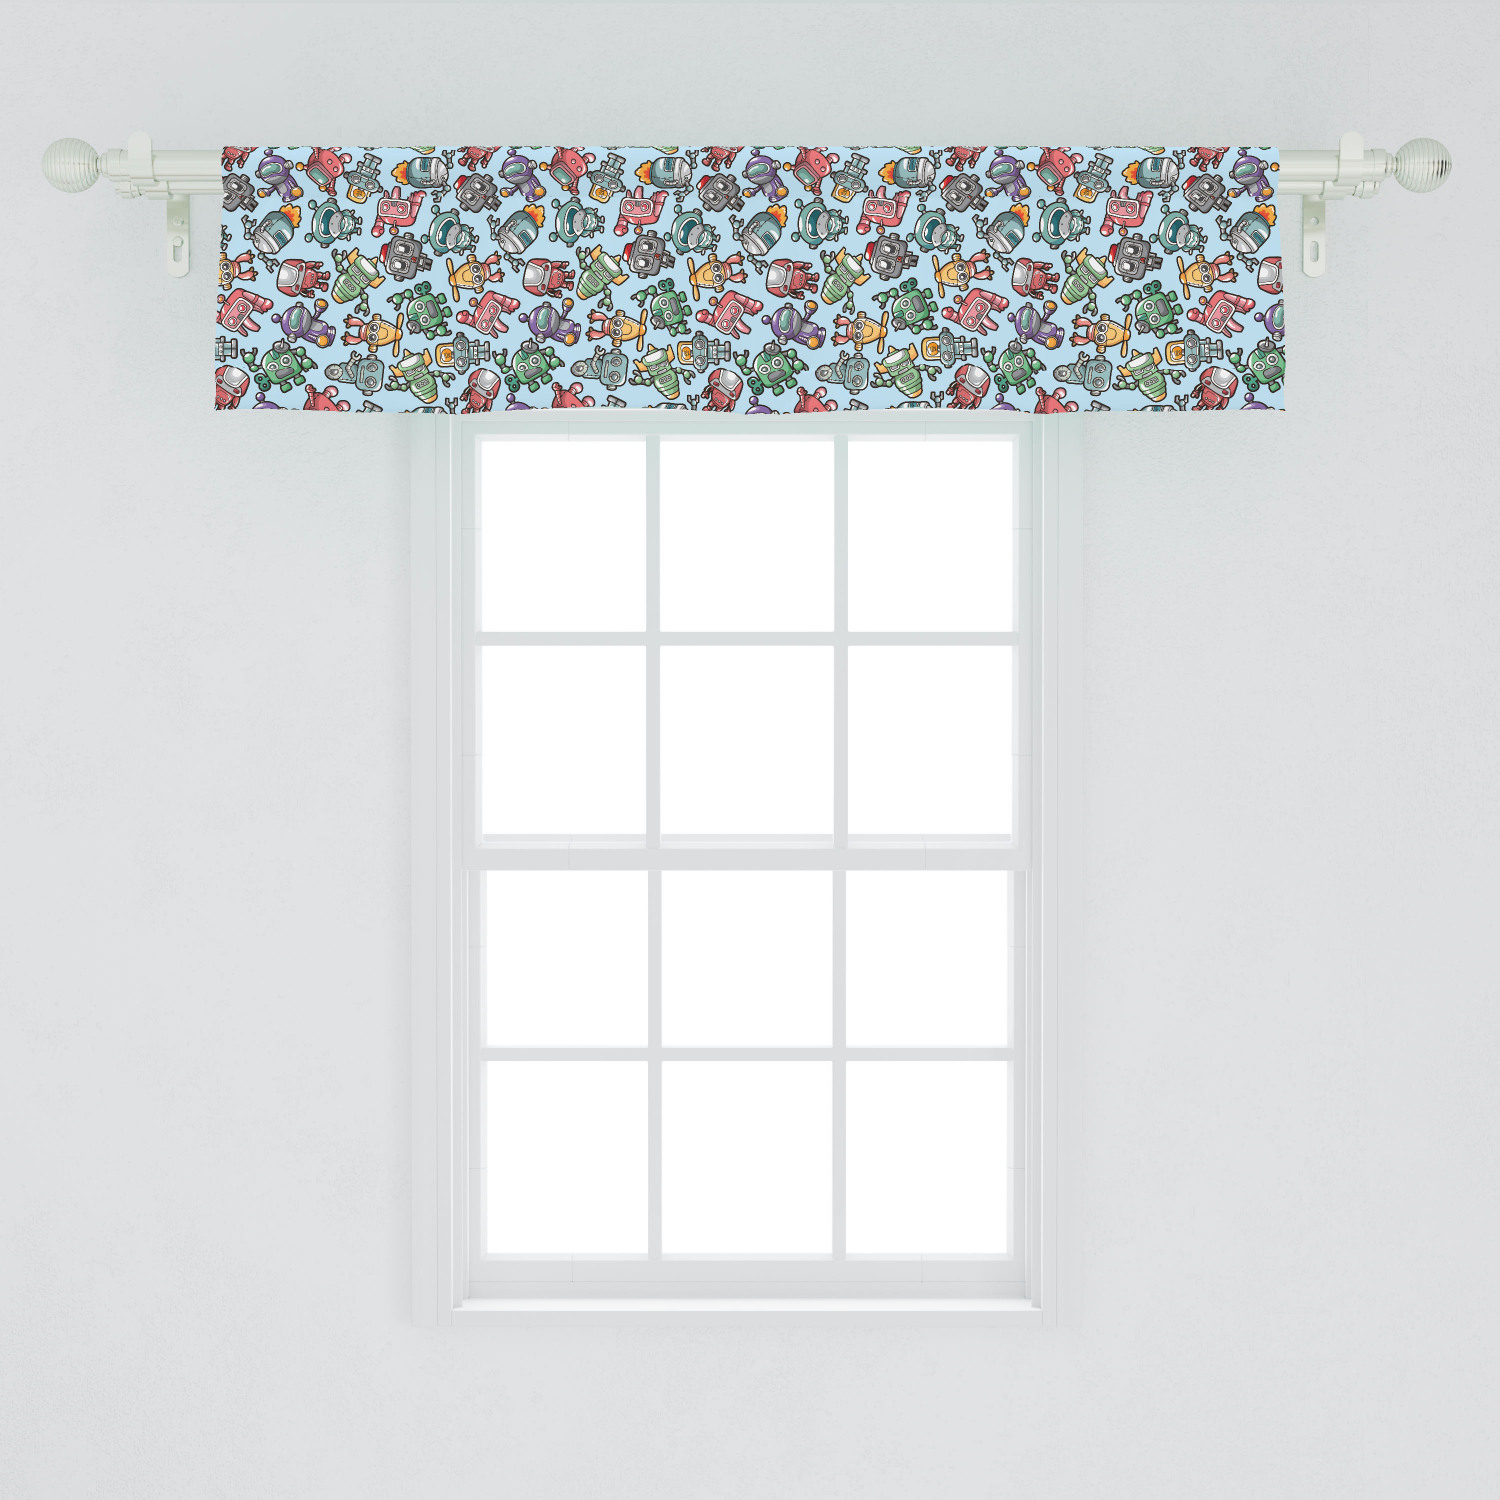 Robot Window Valance Humorous Cartoon Style Toys Science Fiction Themed Illustration Cyborg Playthings Curtain Valance For Kitchen Bedroom Decor With Rod Pocket By Ambesonne Walmart Com Walmart Com